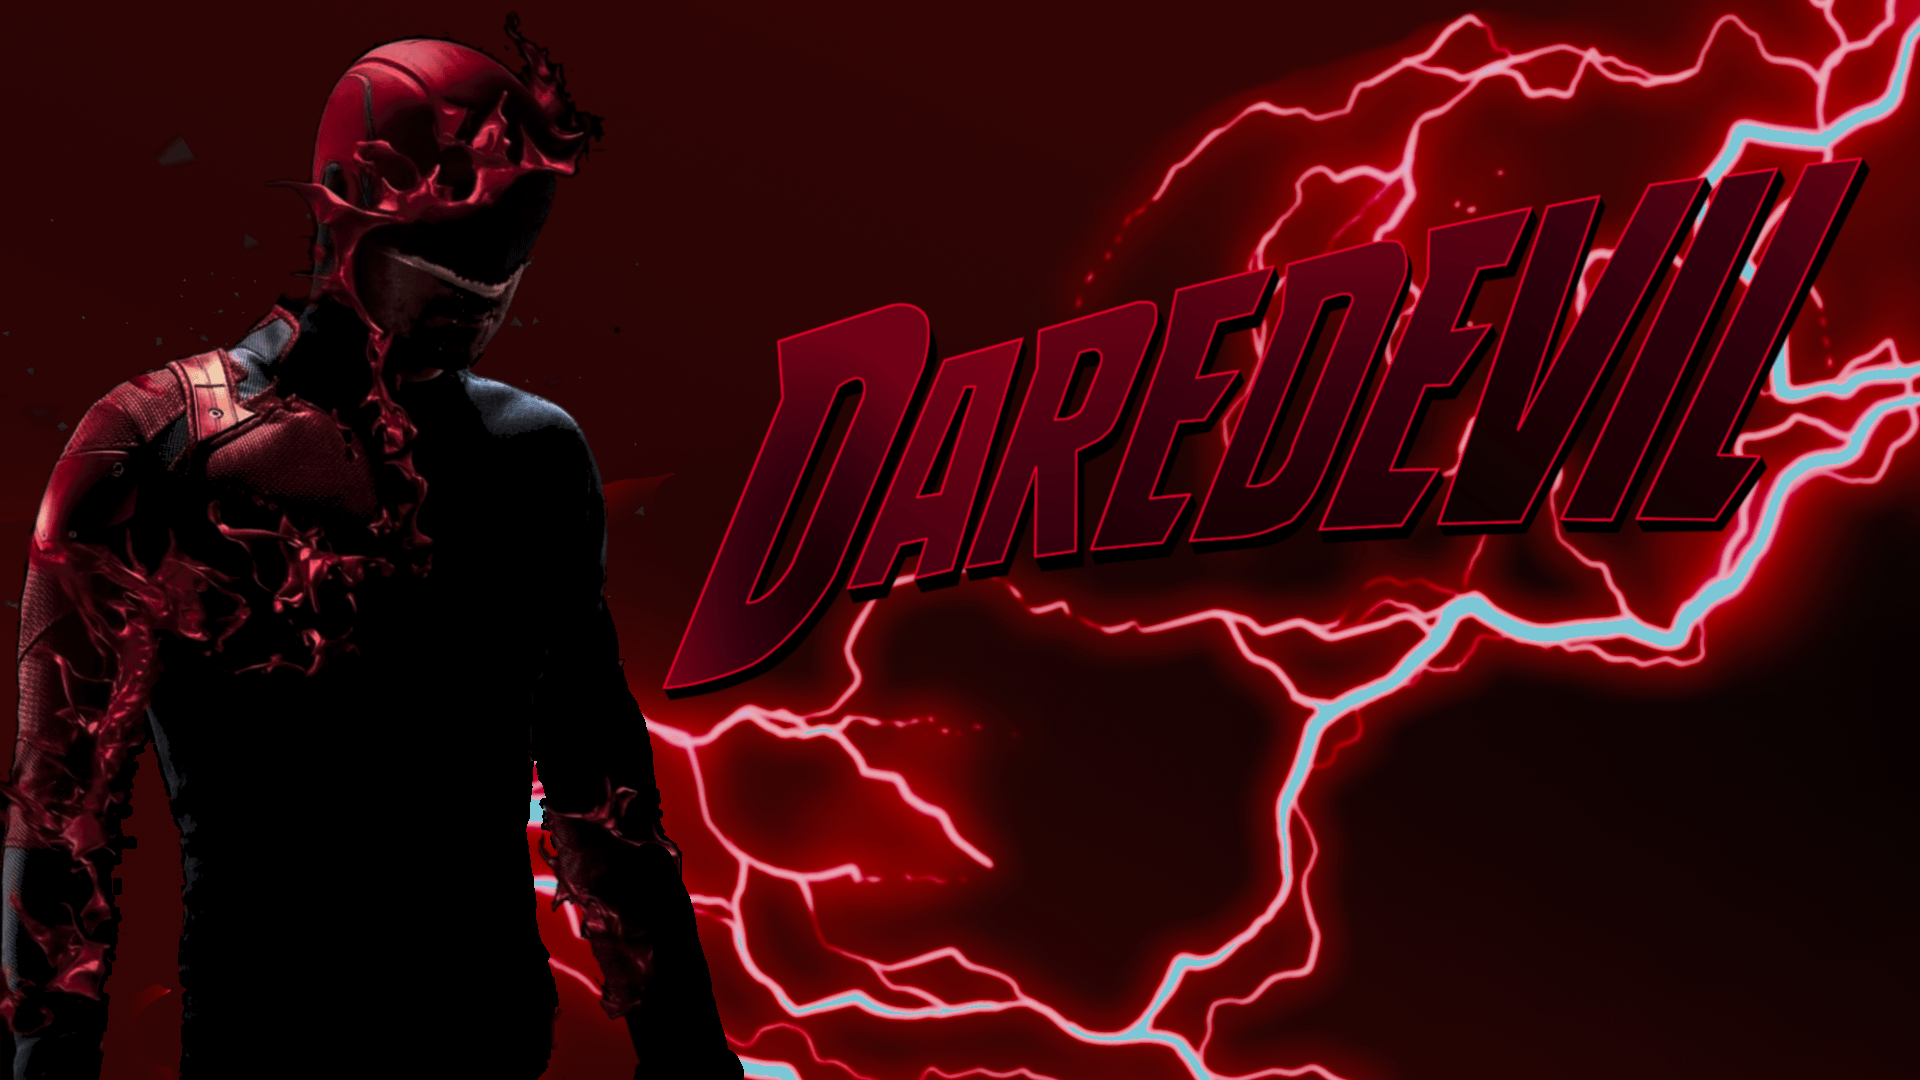 Daredevil Wallpapers Top Free Daredevil Backgrounds Wallpaperaccess